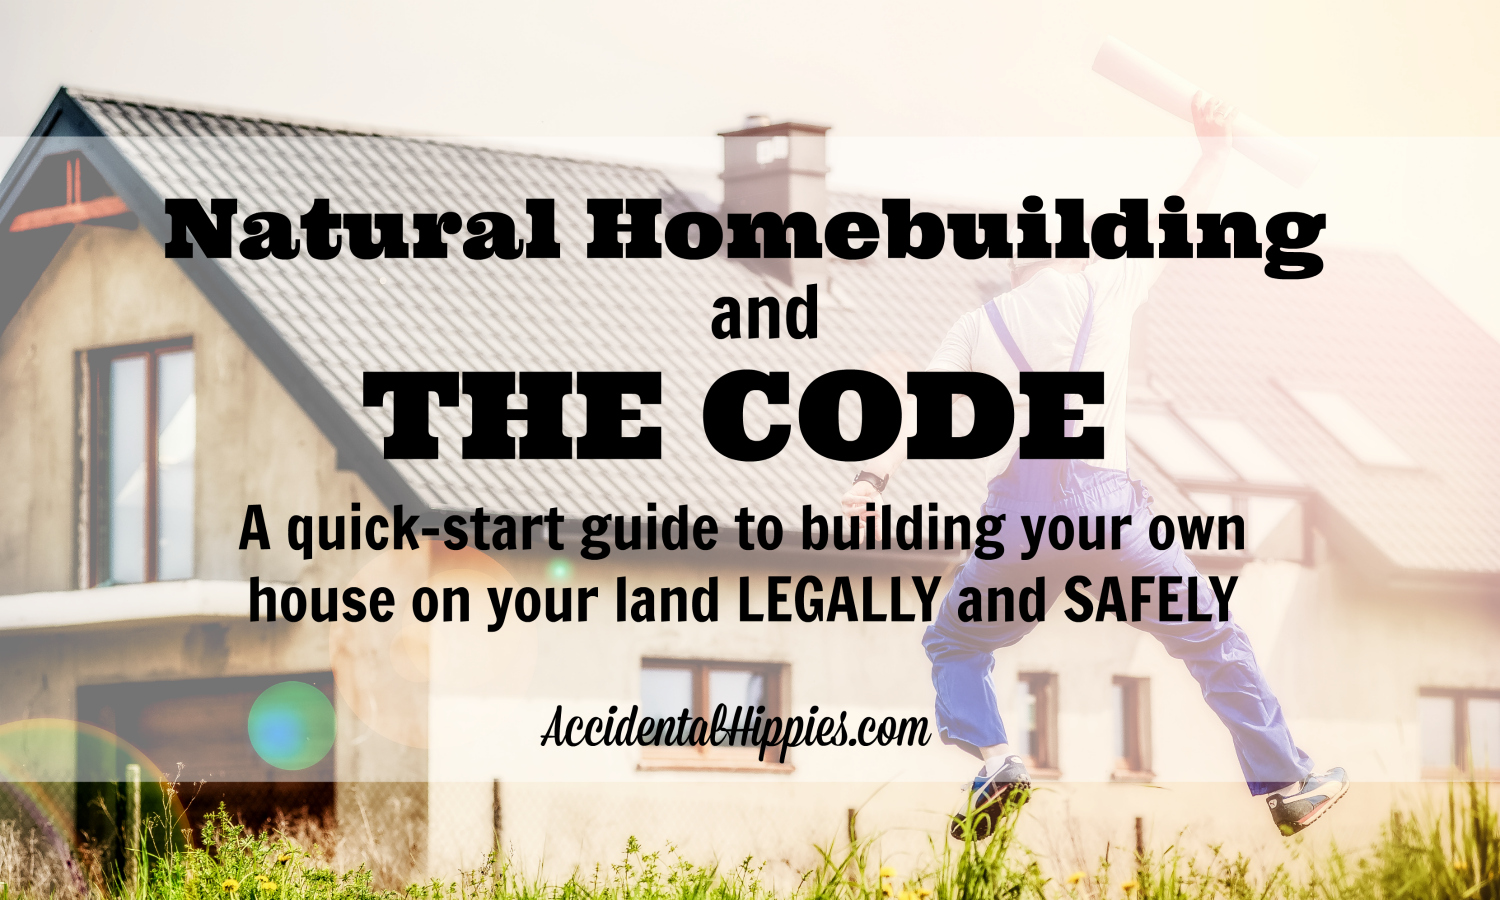 Want to build a cordwood, strawbale, cob, or earthship home? Check here first for info on how to build LEGALLY and SAFELY #naturalbuilding #cordwood #strawbale #earthship